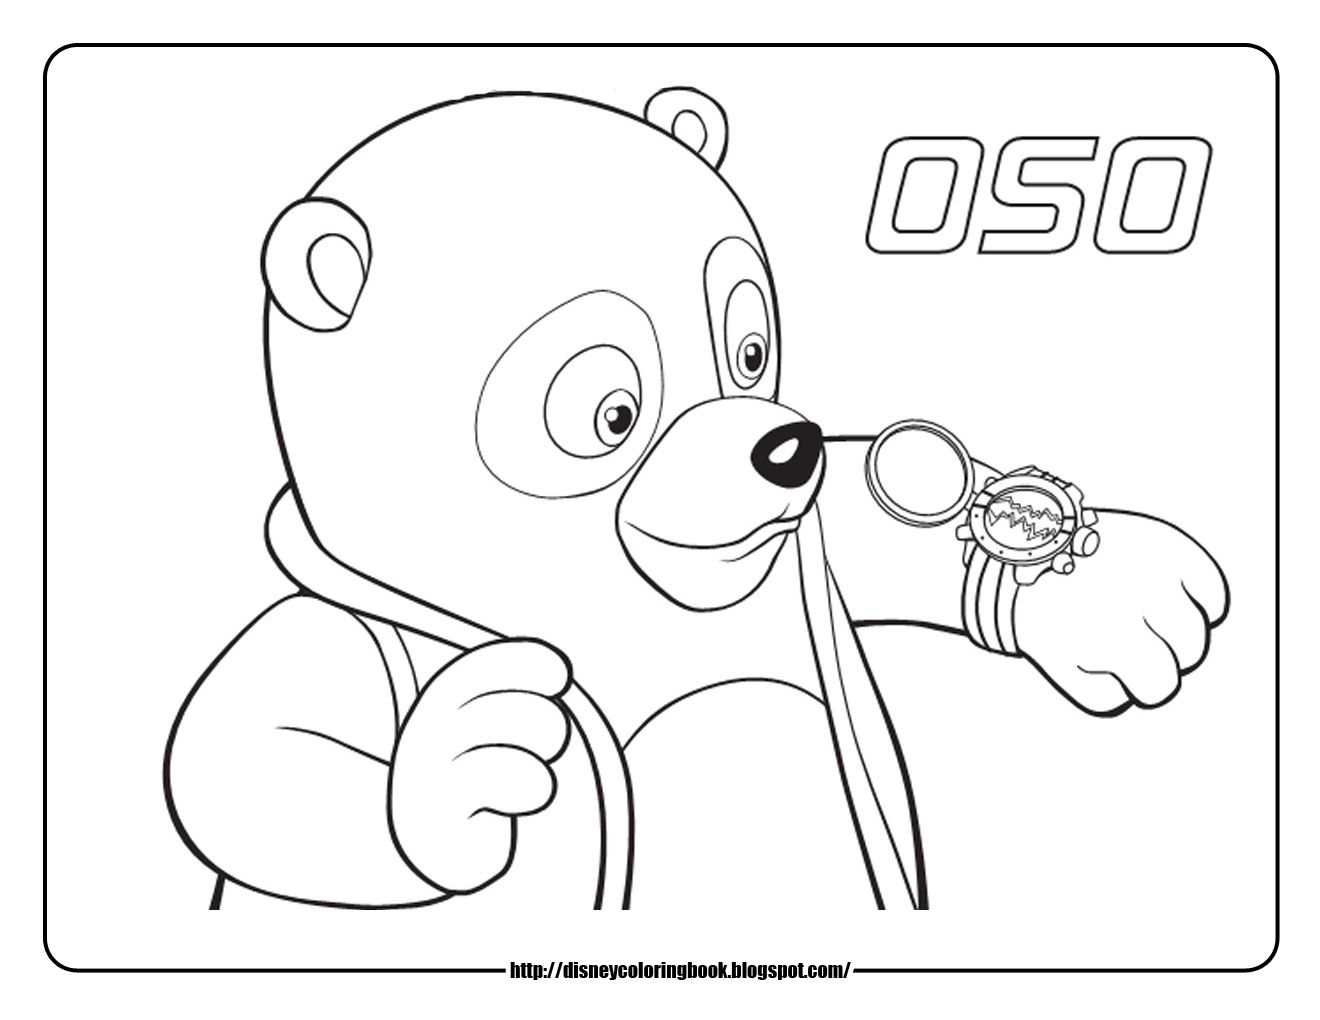 Special Agent Oso Coloring Pages